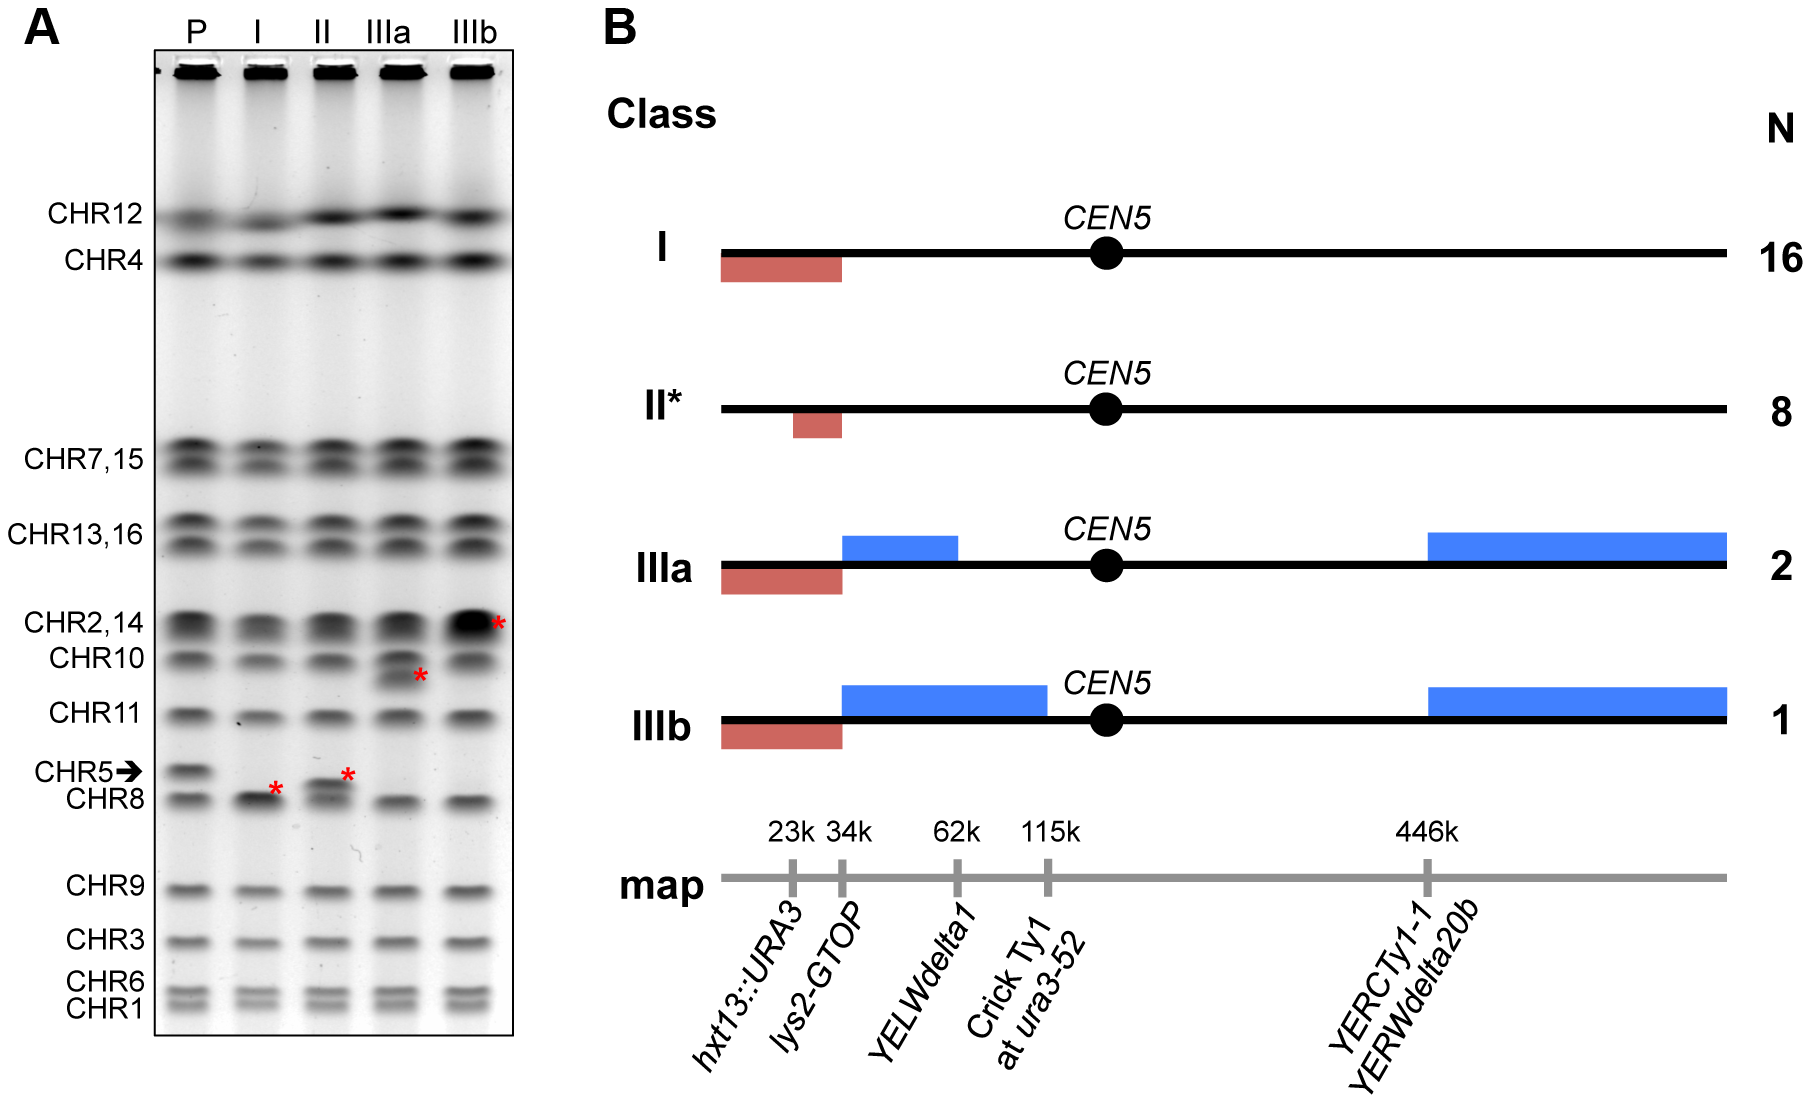 Classes of GCRs associated with the highly transcribed G4 DNA motif.